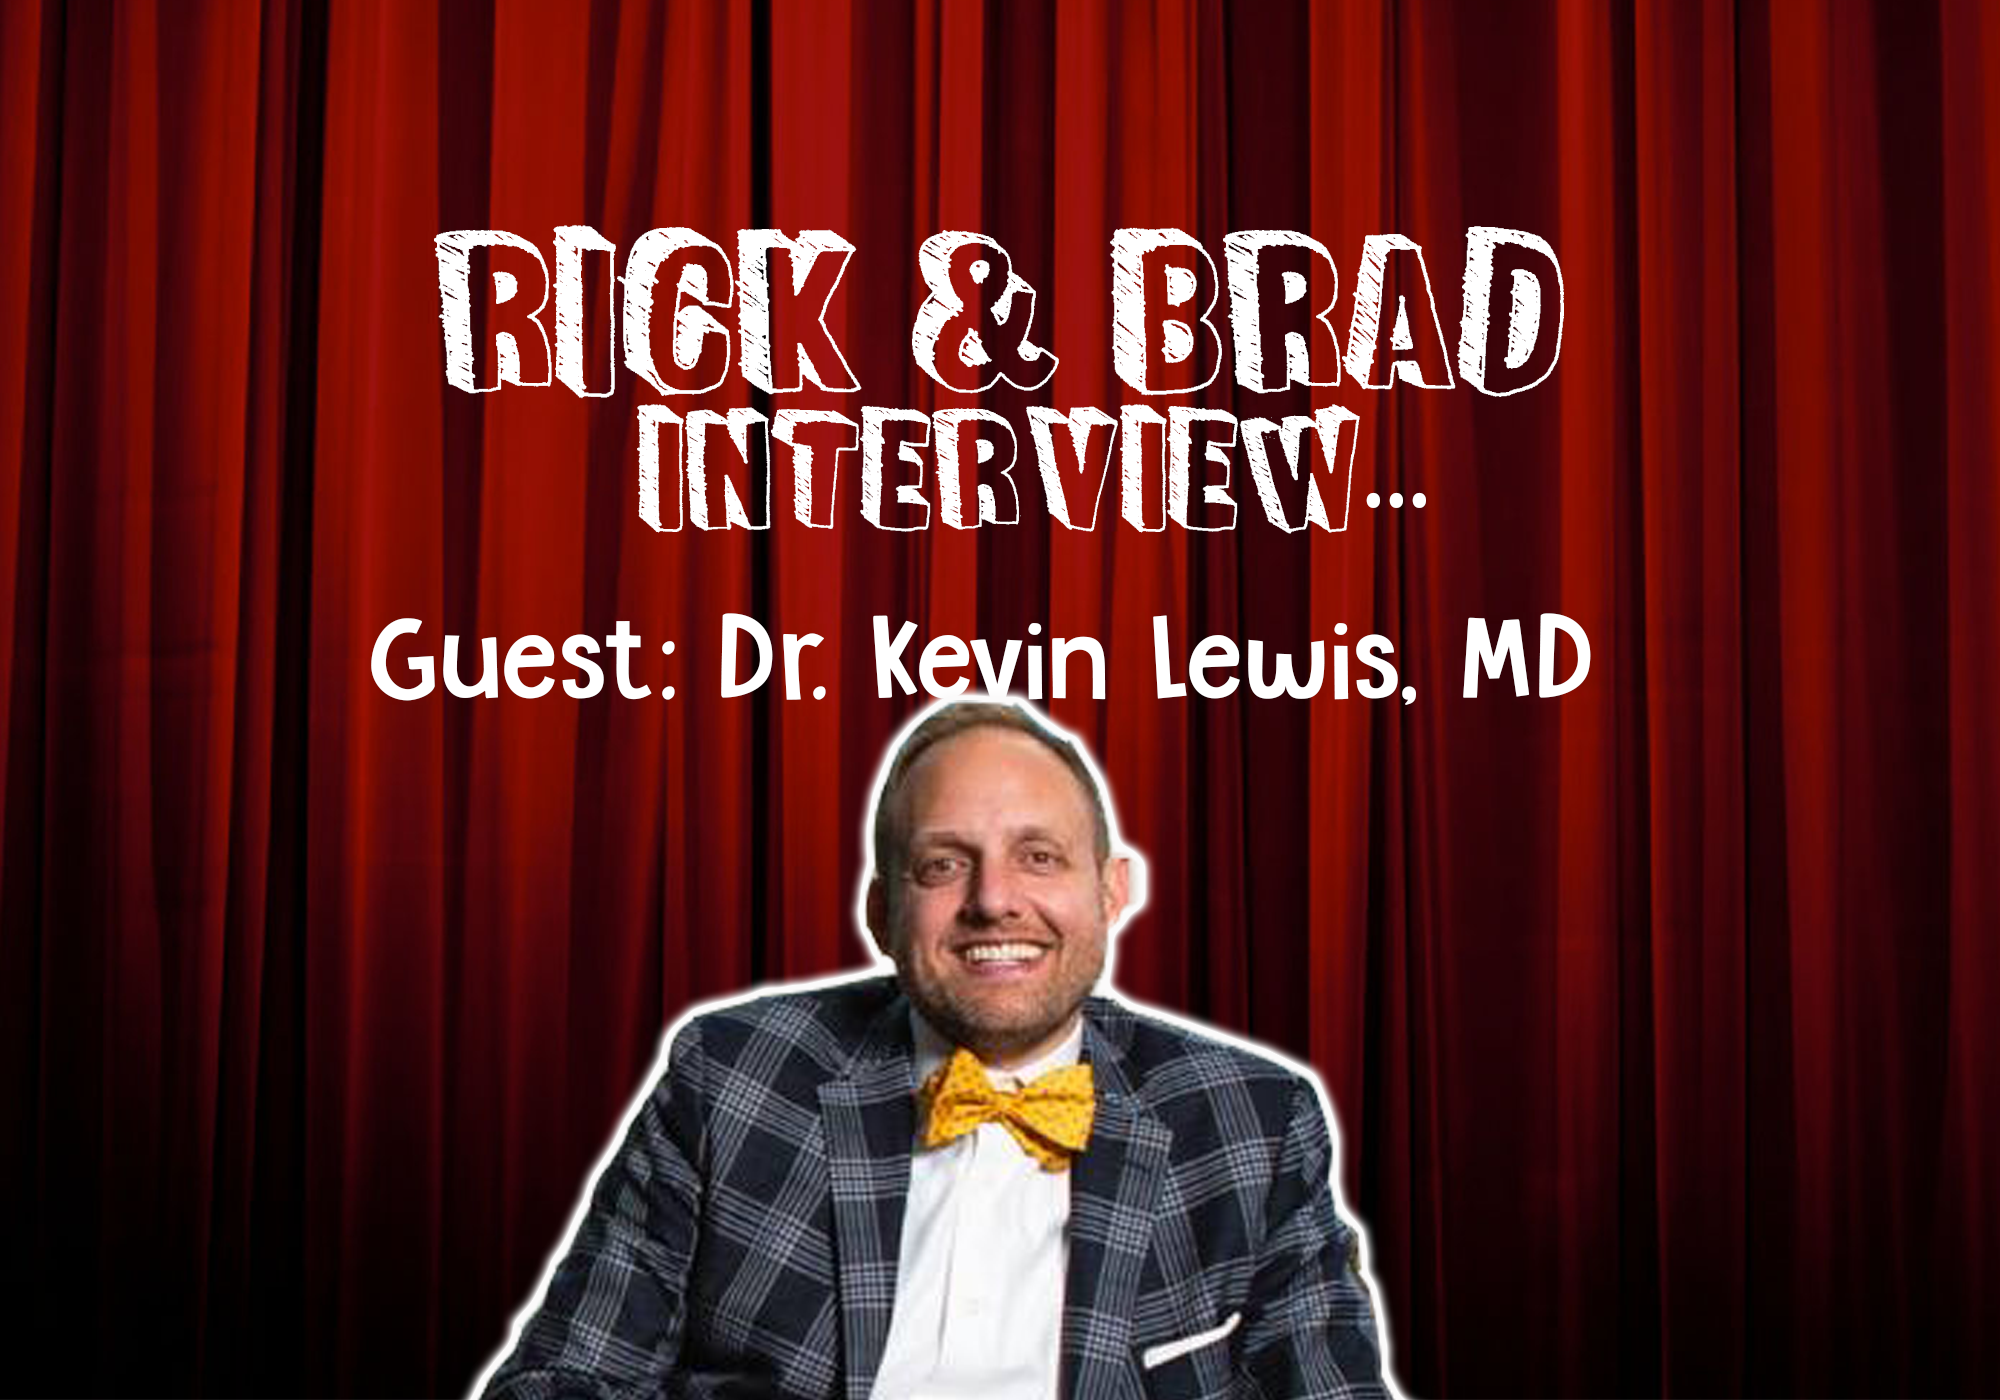 [PODCAST] Dr. Lewis Answers Medical Questions